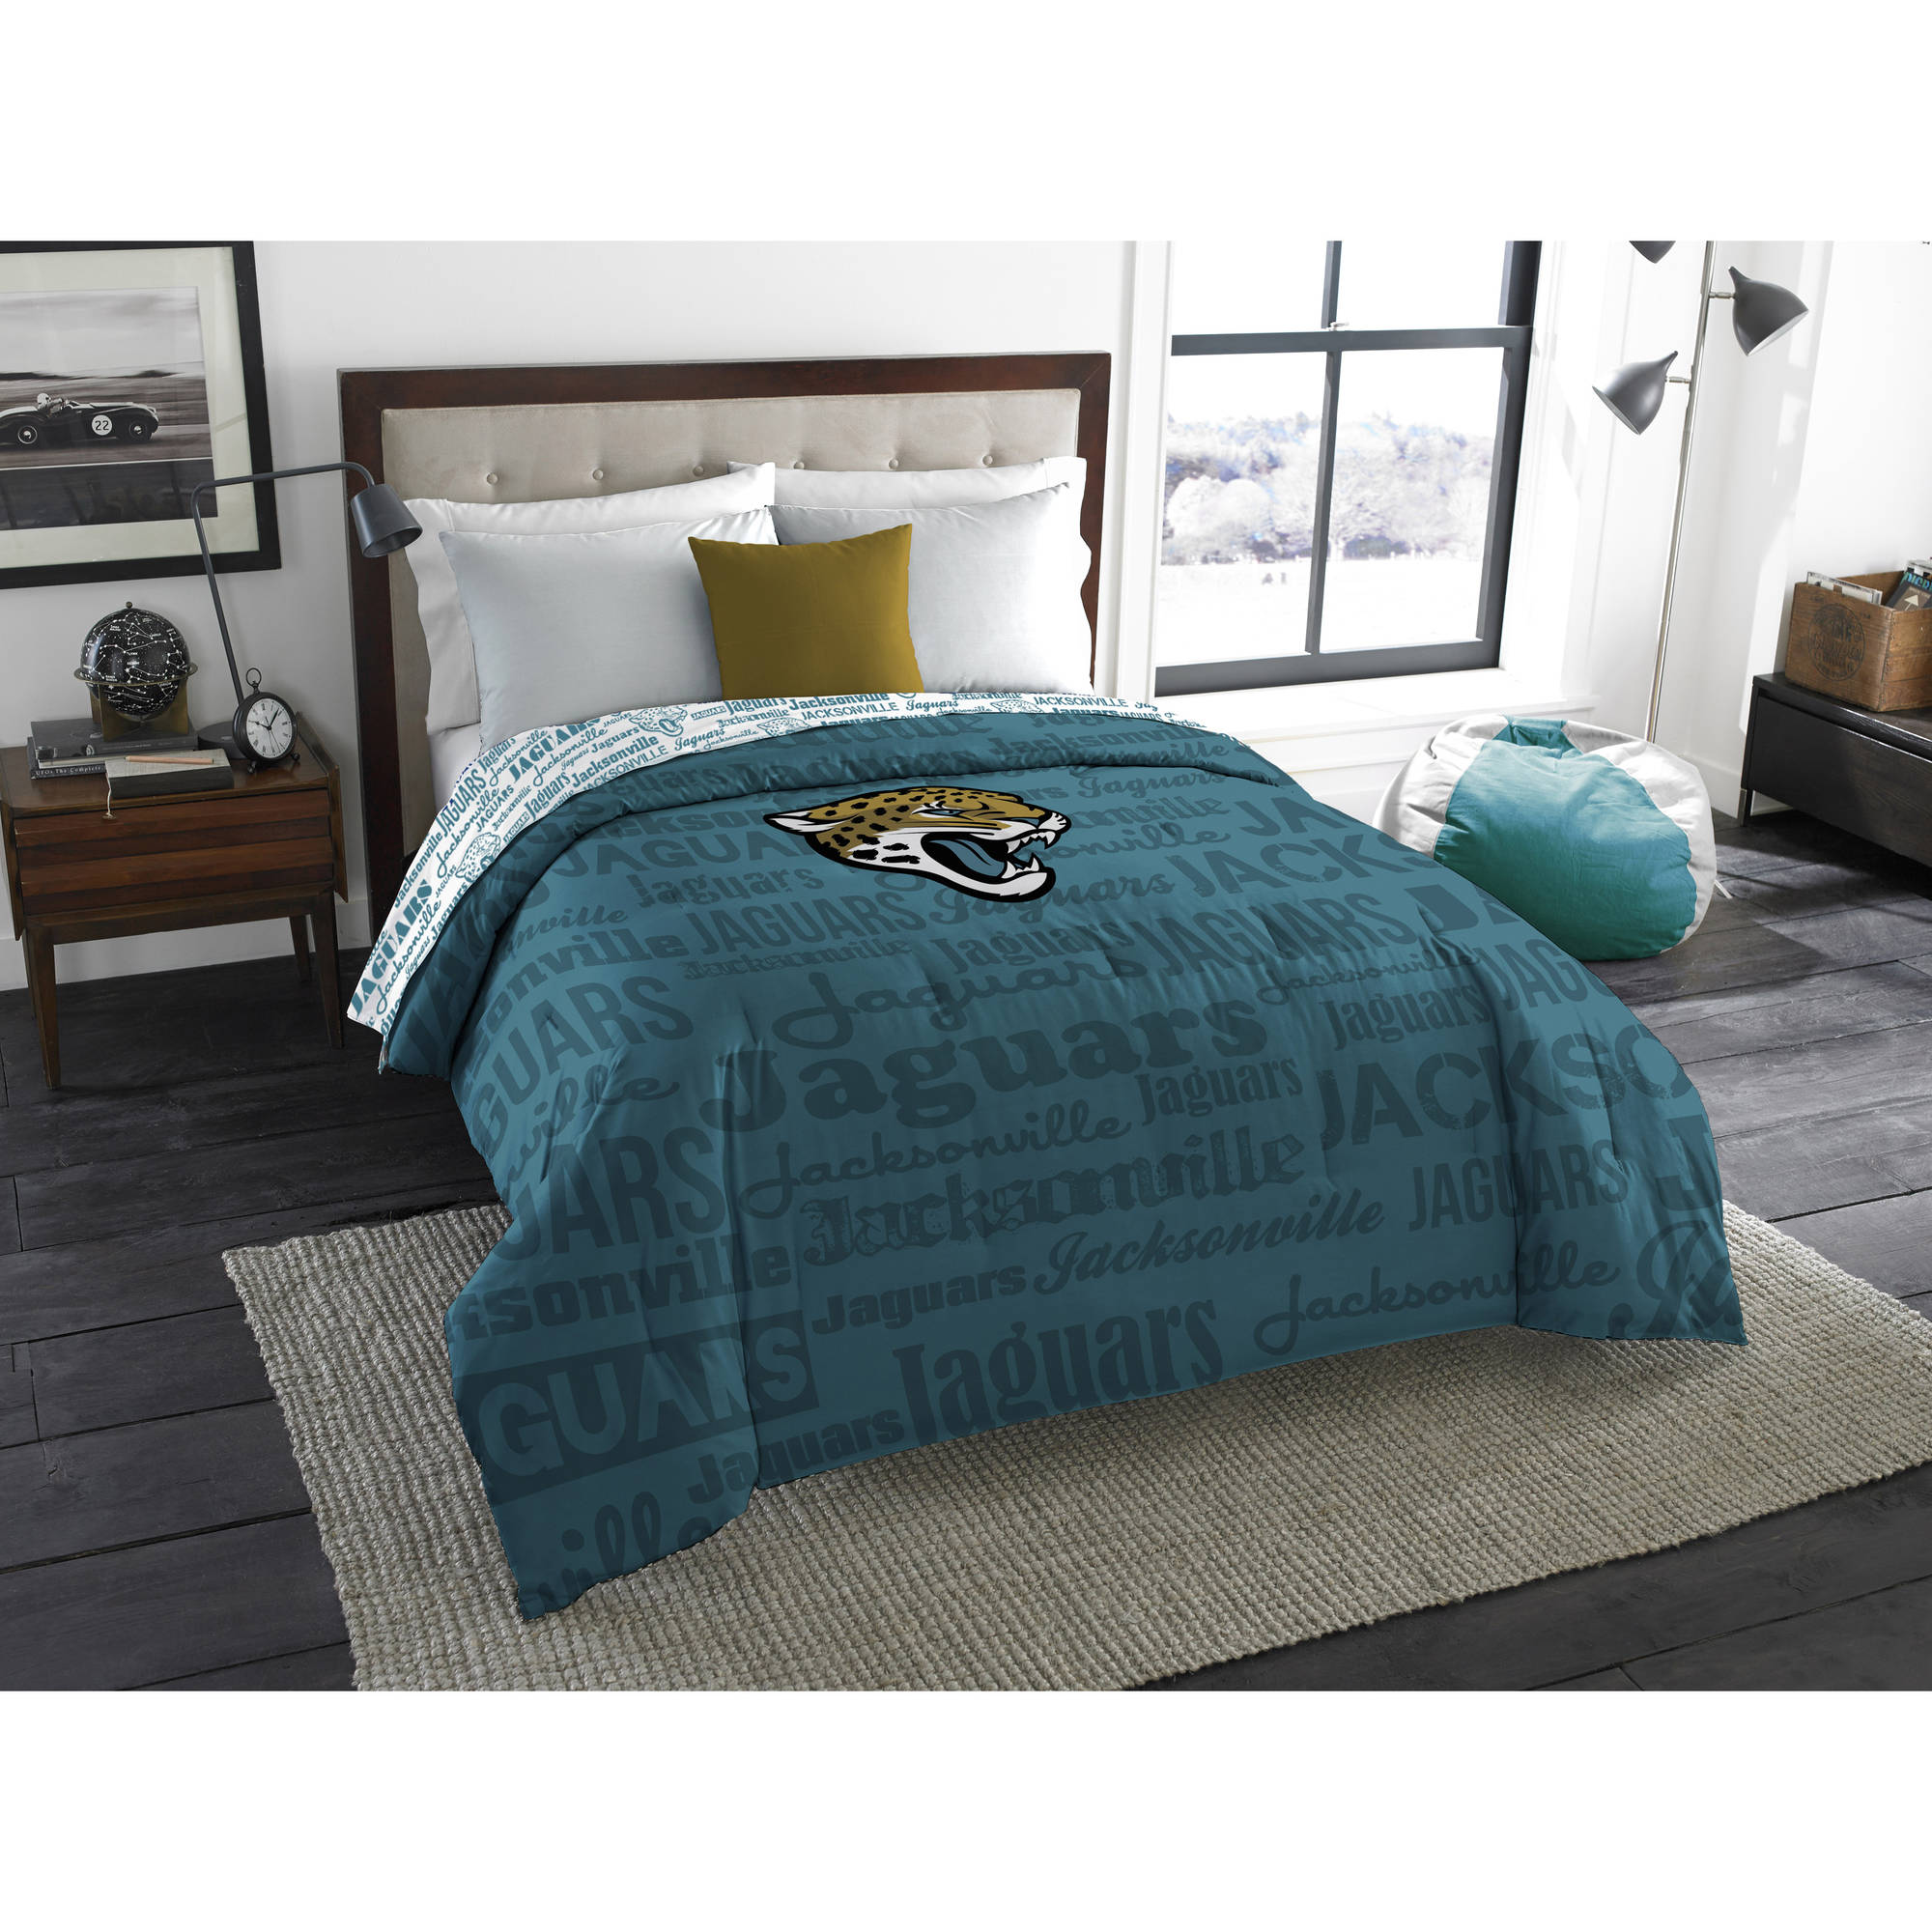 "NFL Jacksonville Jaguars ""Anthem"" Twin/Full Bedding Comforter"